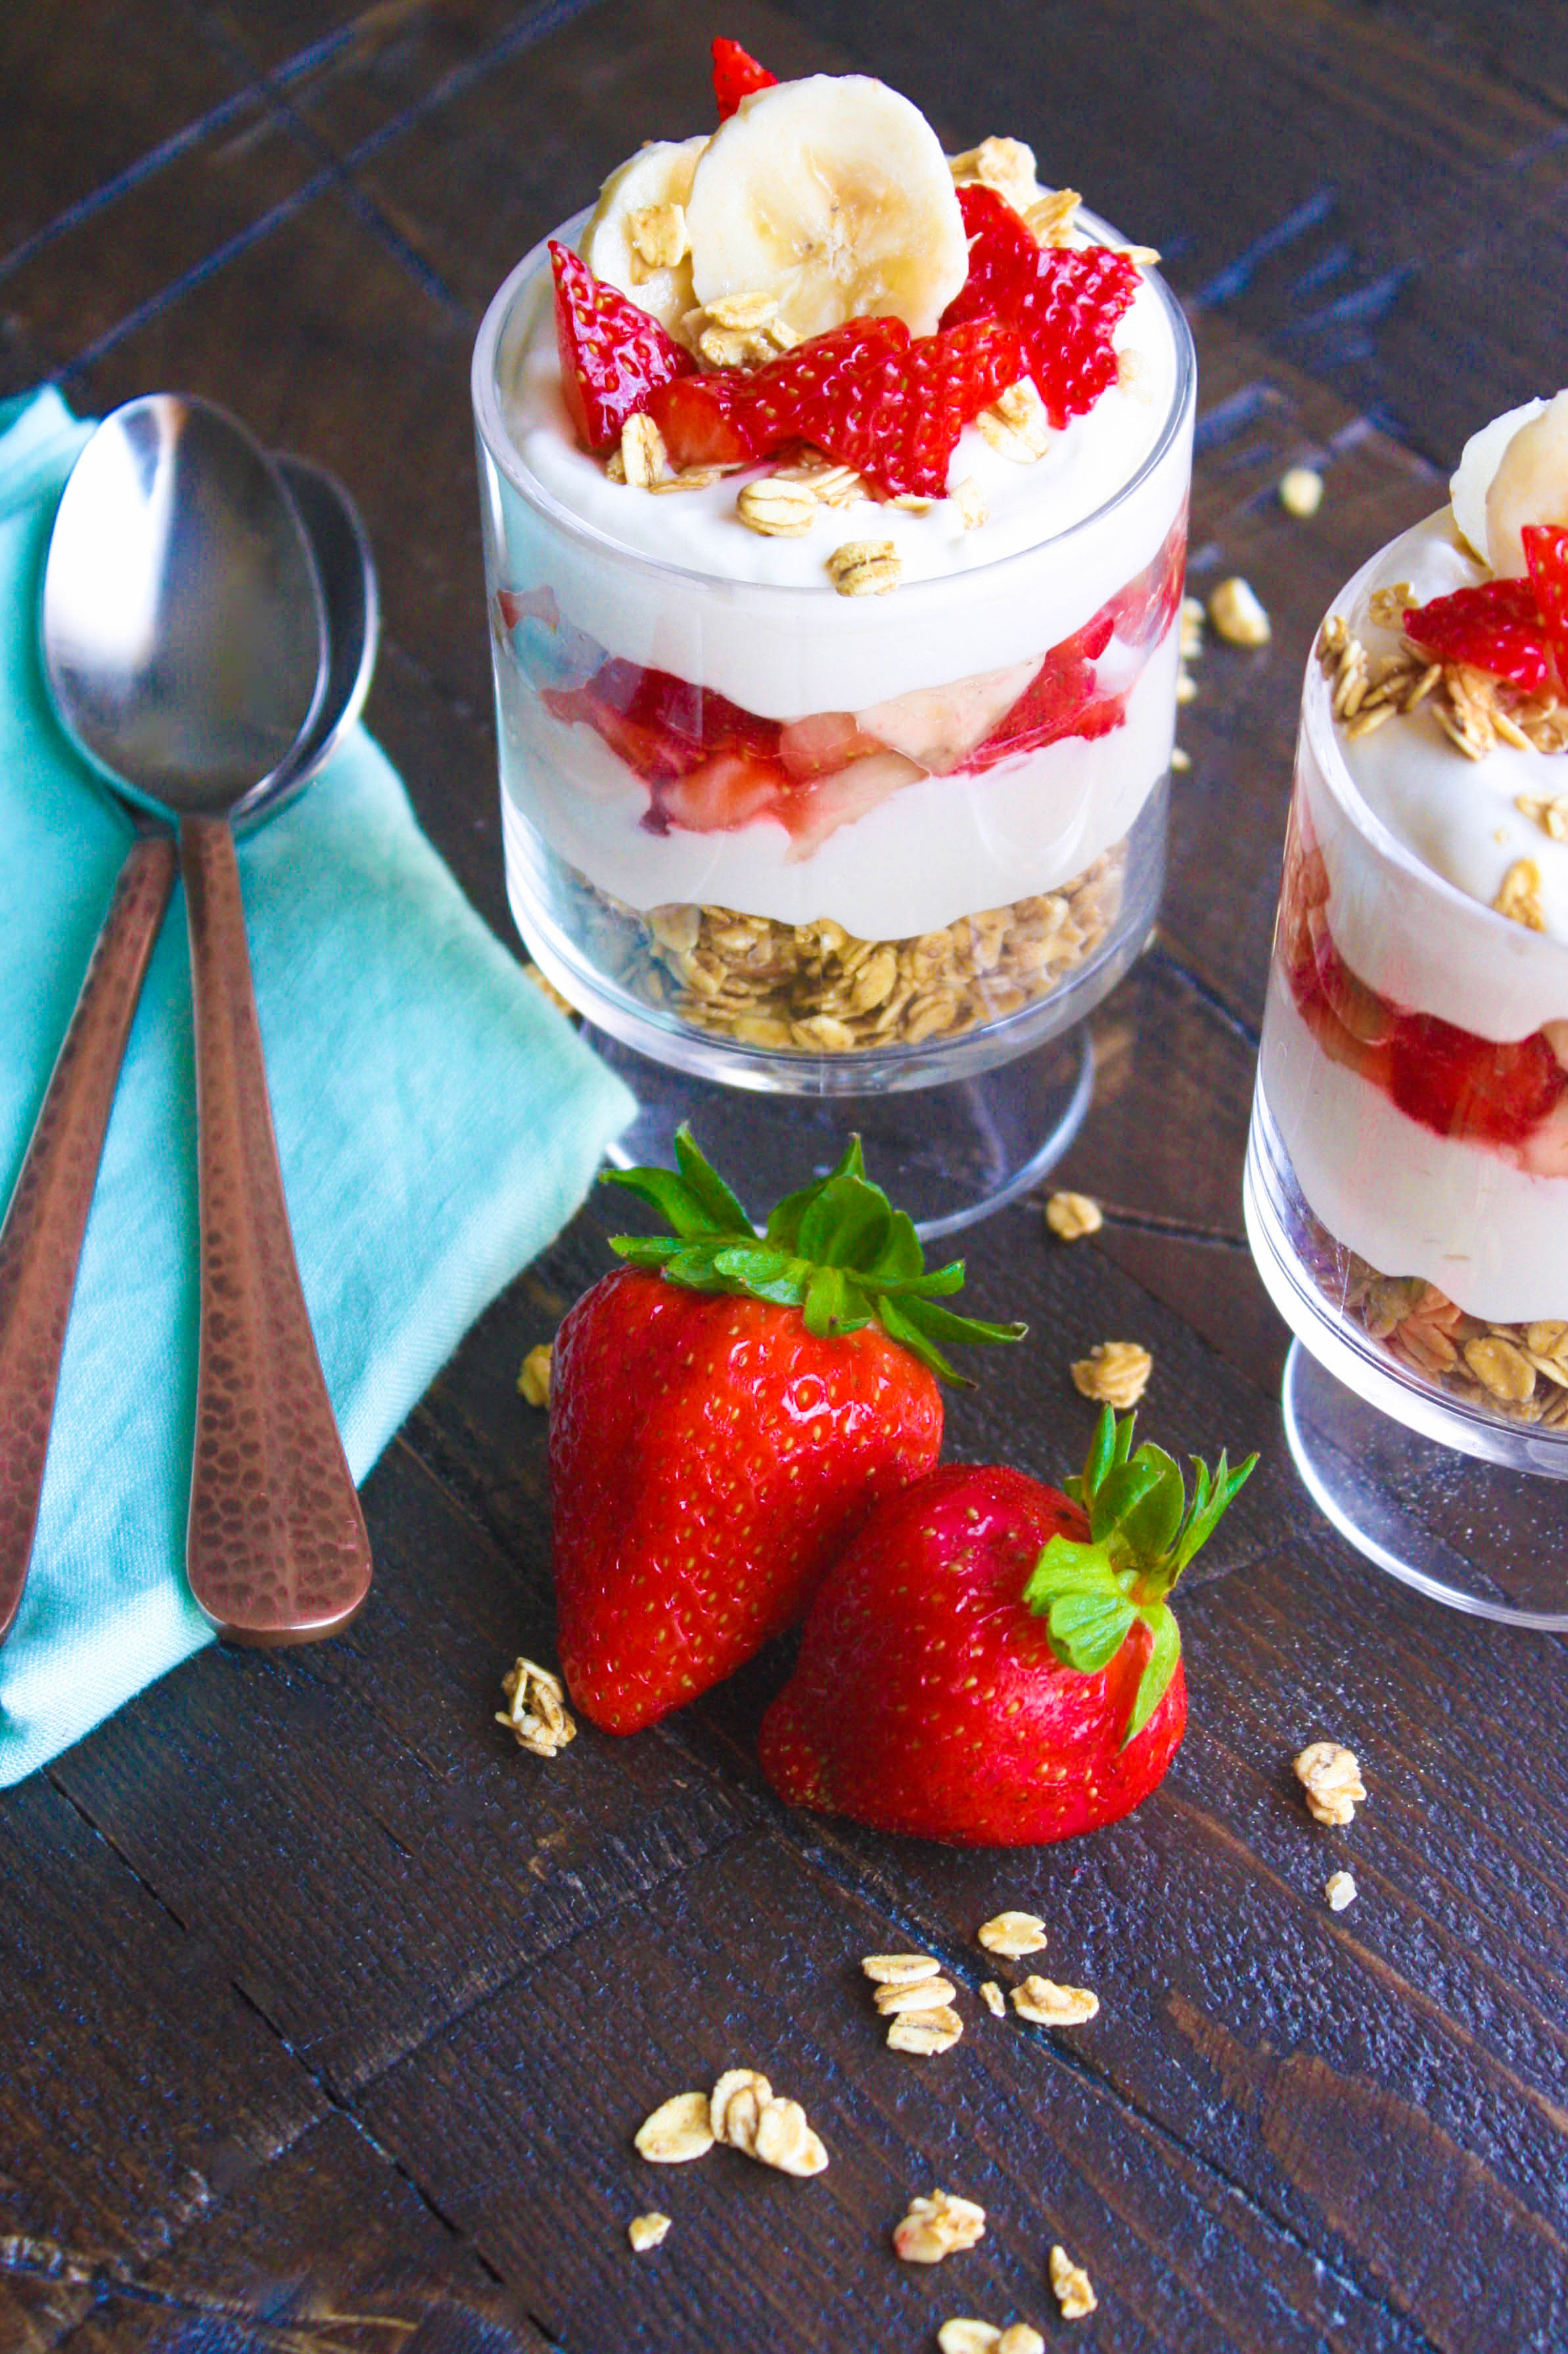 Grab a spoon and dig right in to No Bake Strawberry-Banana Cheesecake Parfaits -- what a great treat! No Bake Strawberry-Banana Cheesecake Parfaits make a lovely, fun dessert!